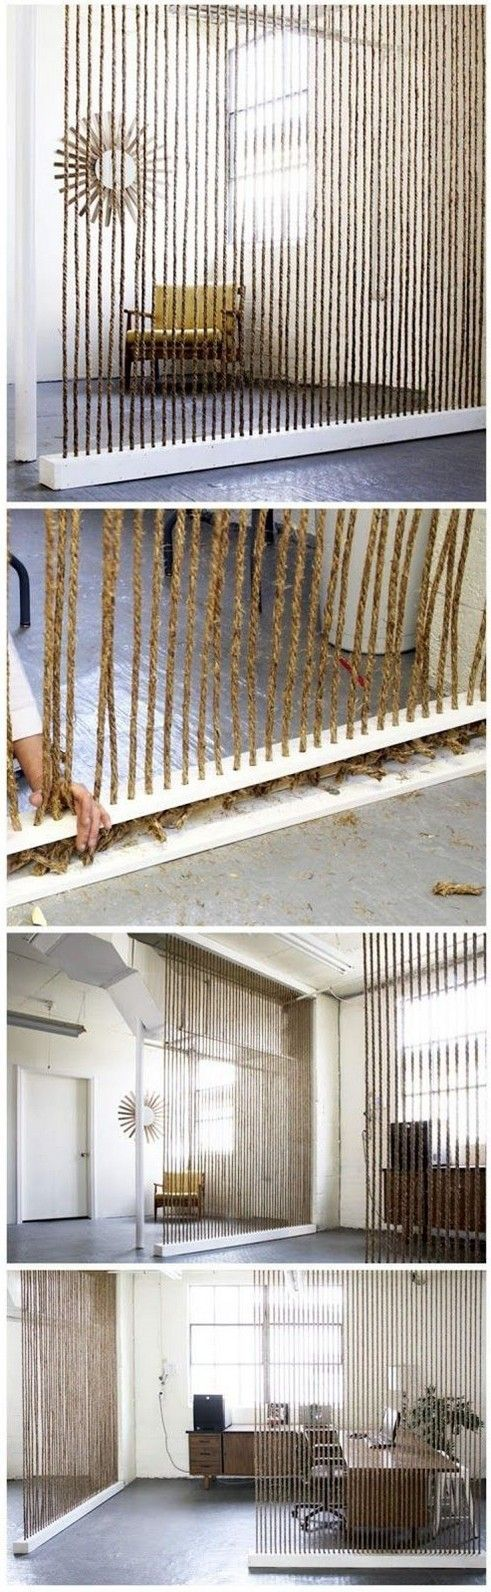 It may not be super private, but this DIY rope wall can add a great look in your home or office